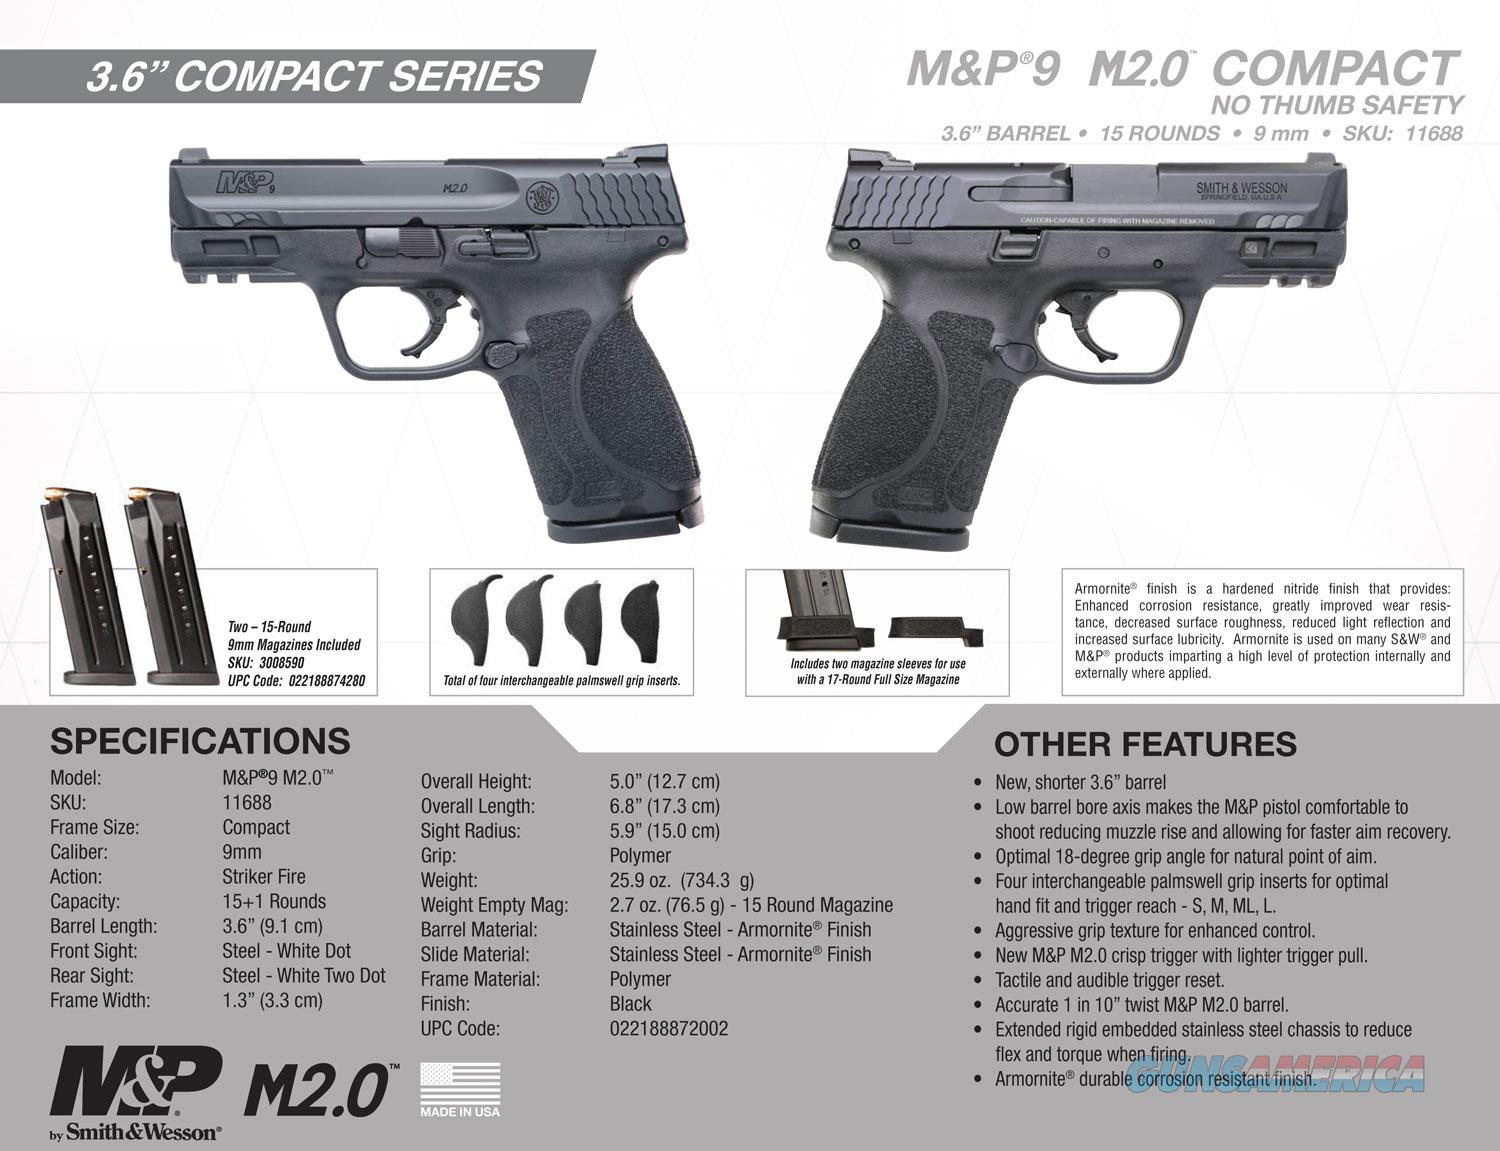 """S&W M&P9 M2.0 Compact 9mm 3.6"""" 15+1 $50 Rebate ... For Sale"""